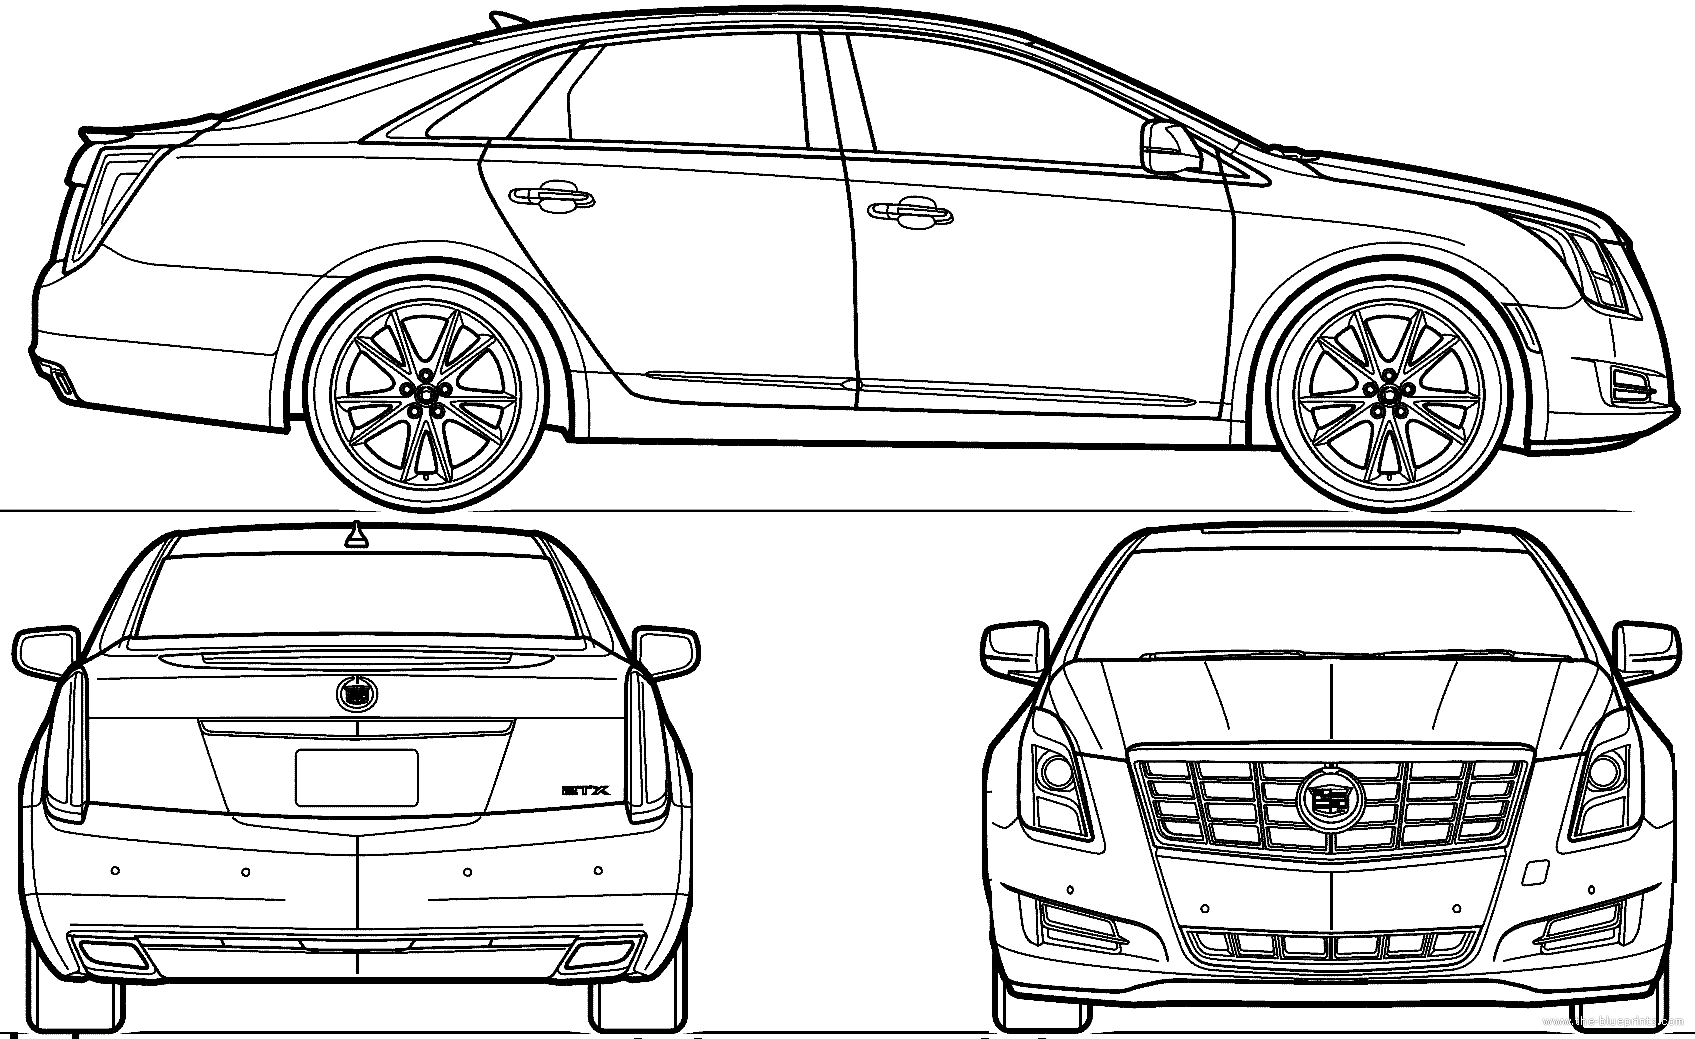 How to draw a cadillac logo for How to draw blueprints online